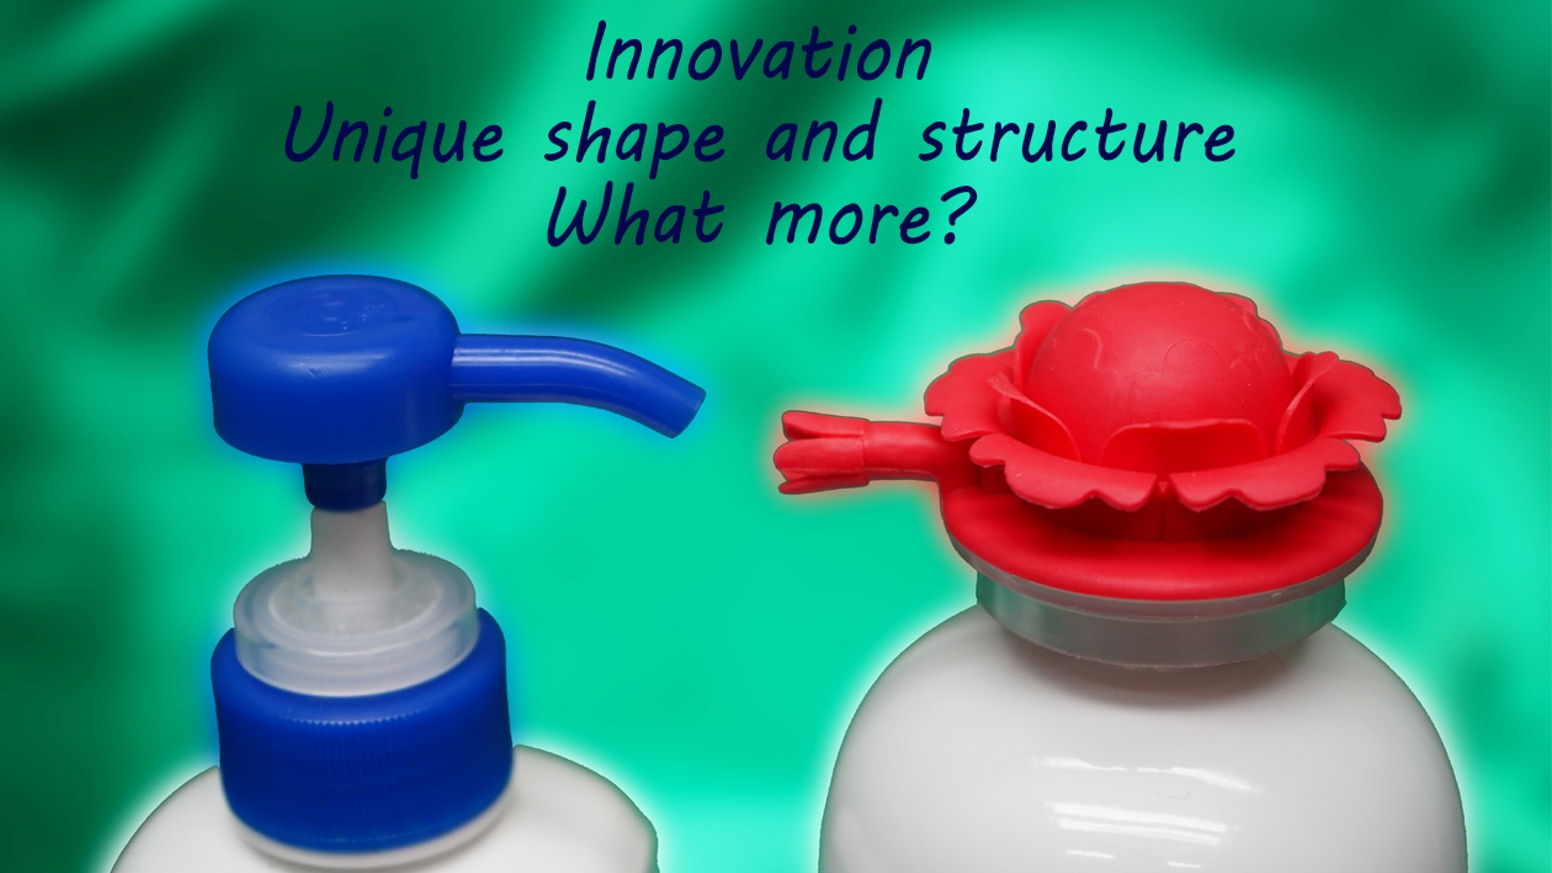 Helps reduce plastic wastage. It can be reused many times, or used as a vase. The elastic pump is recyclable.